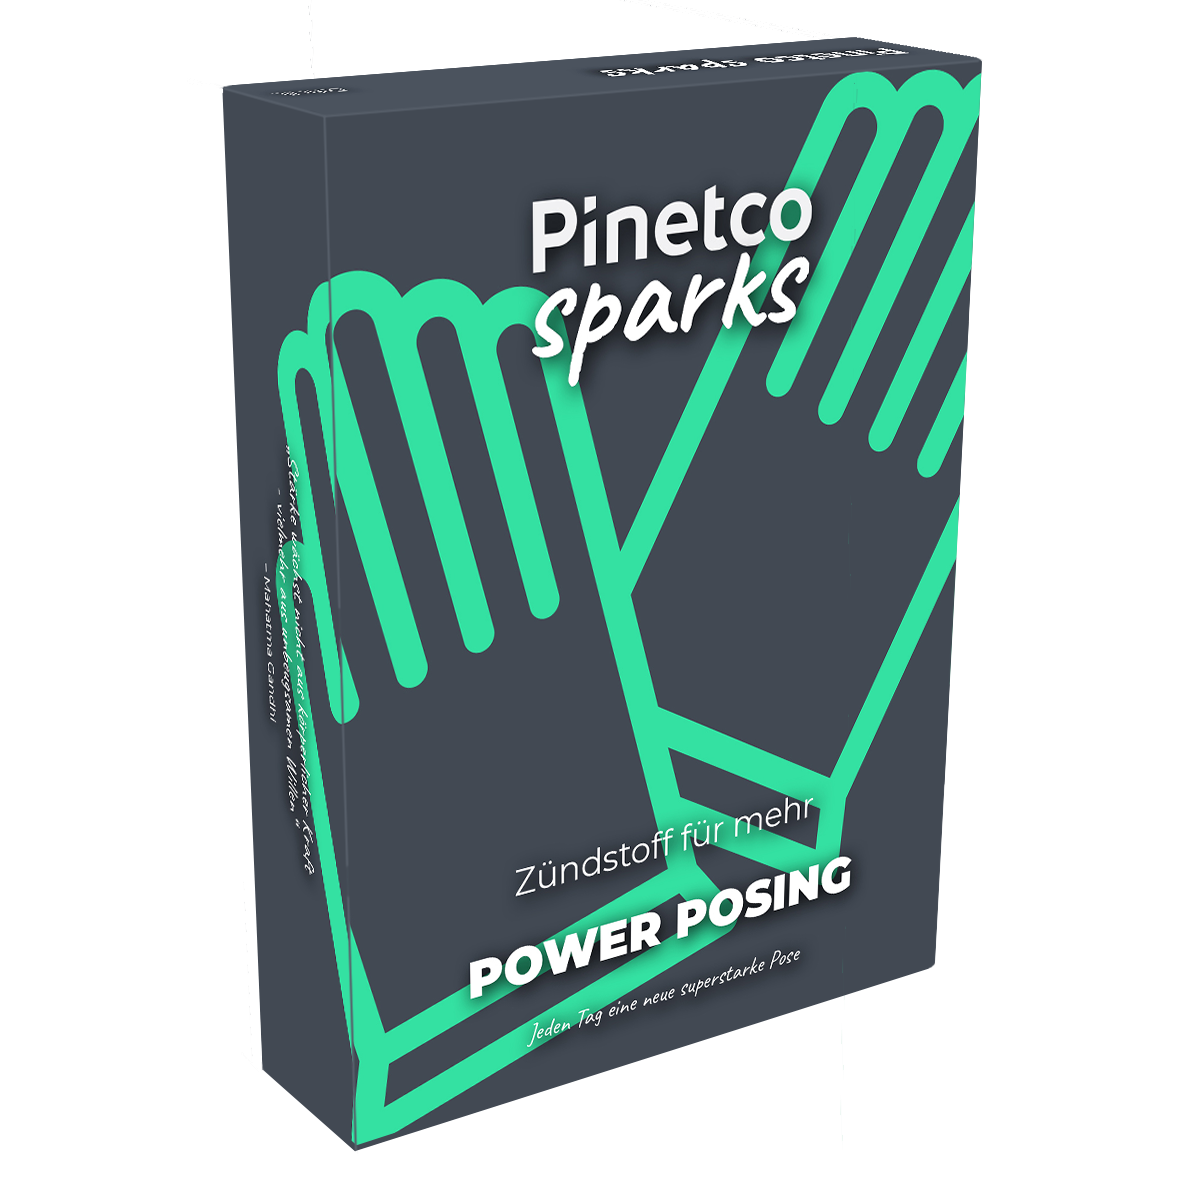 mockup-packung-powerposing